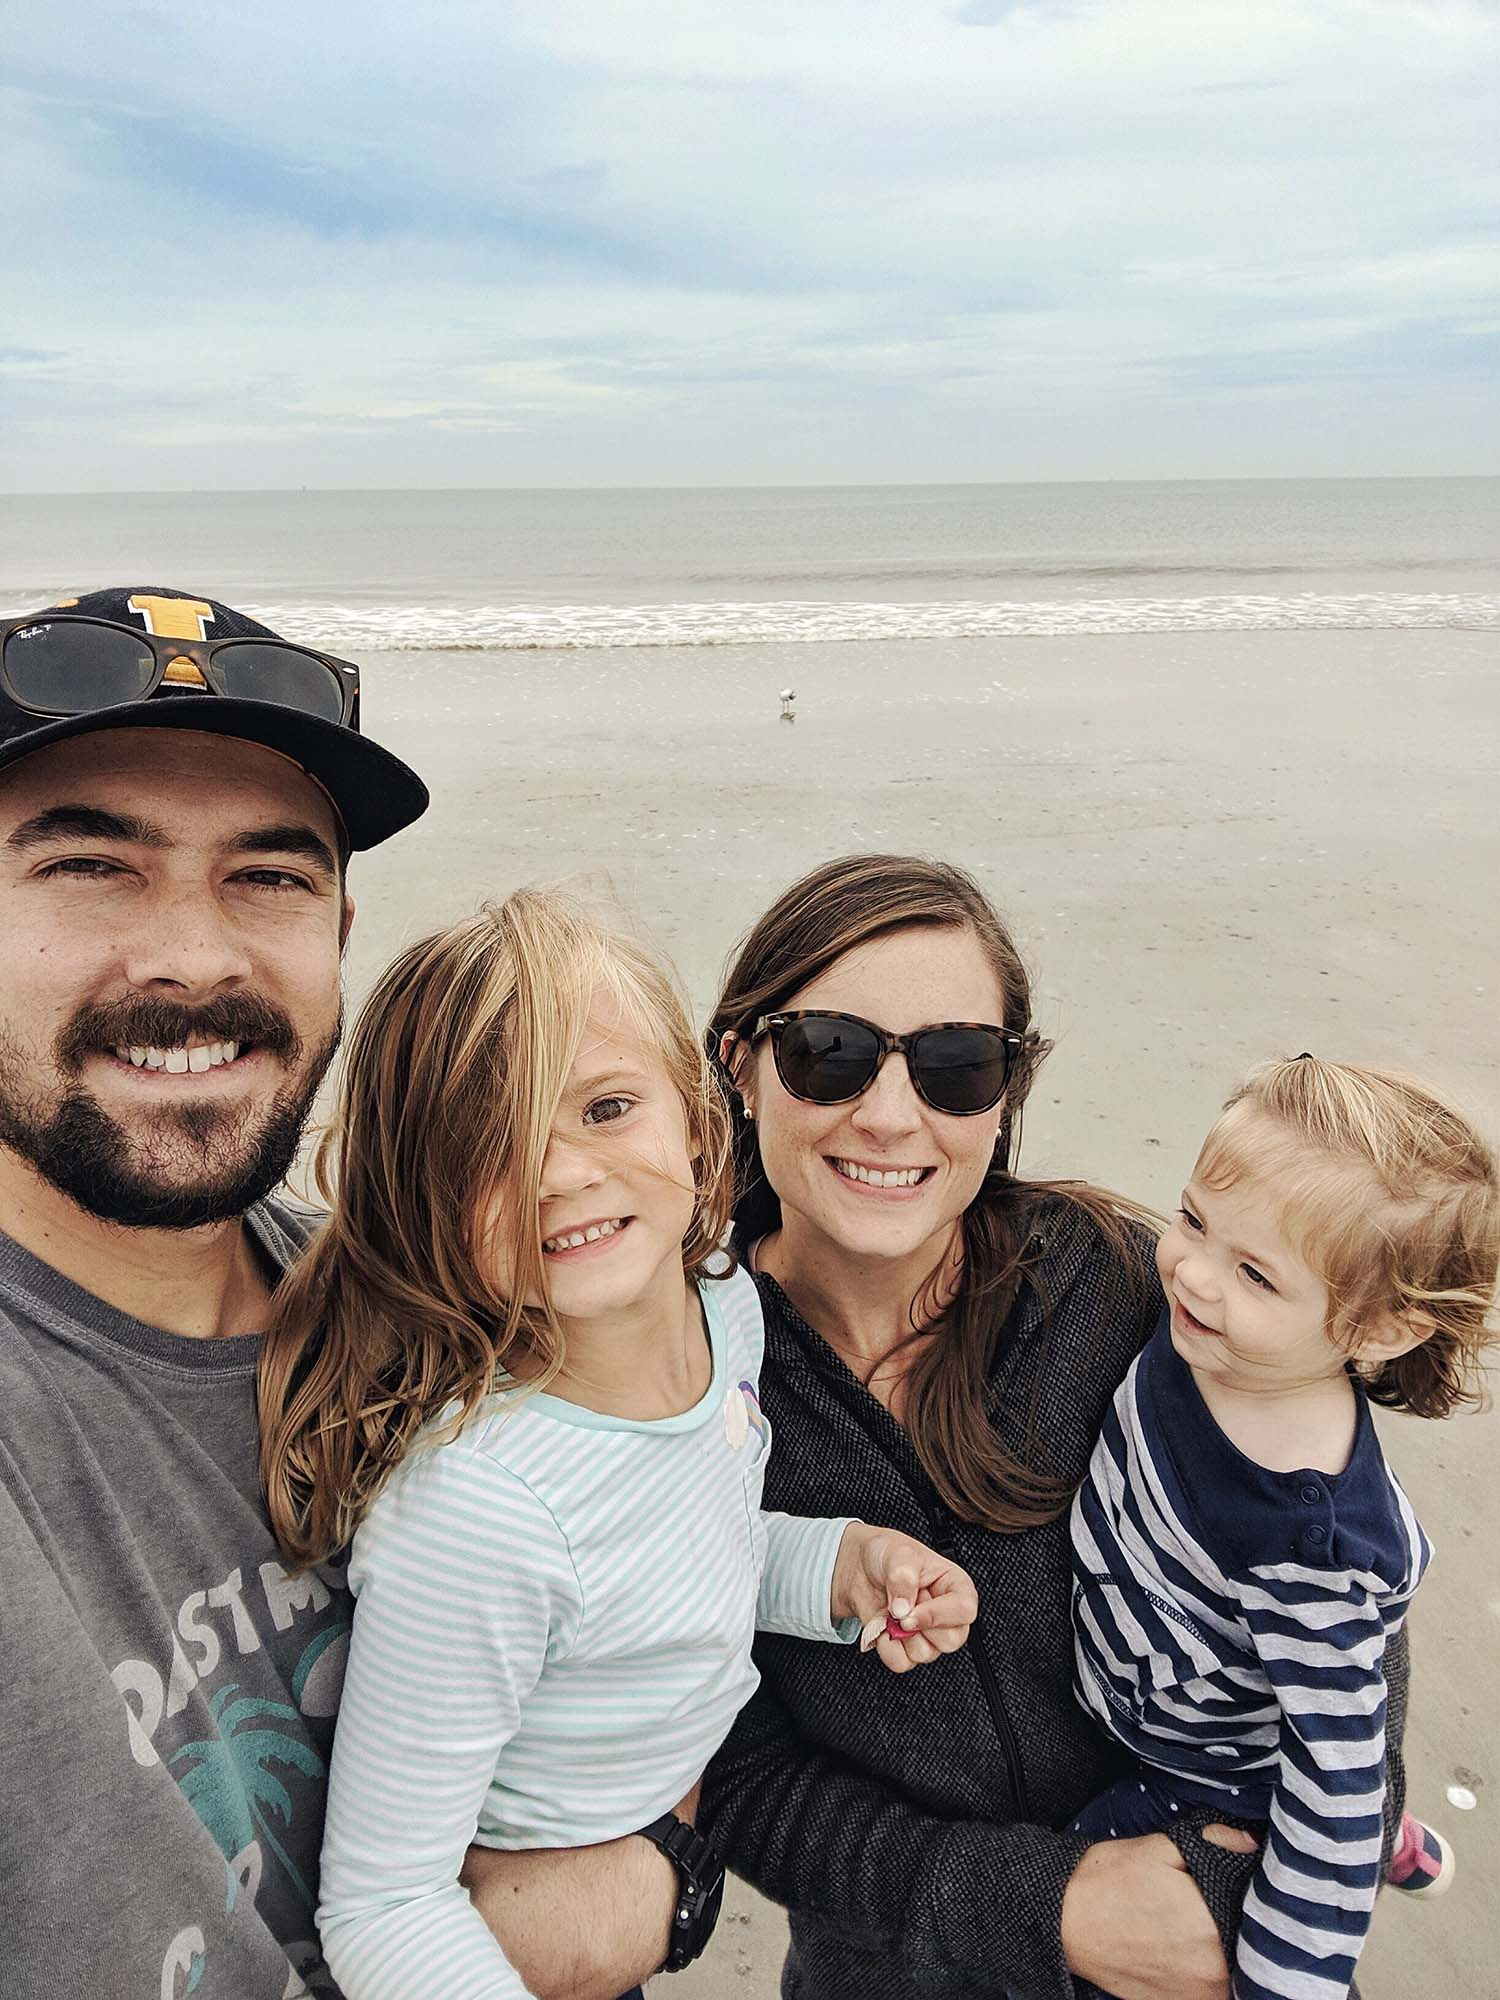 Why We Stopped Our Full-Time Travels. @outofboundaries #outofboundaries #fulltimetravel #familytravel #fulltimefamily #RVlife